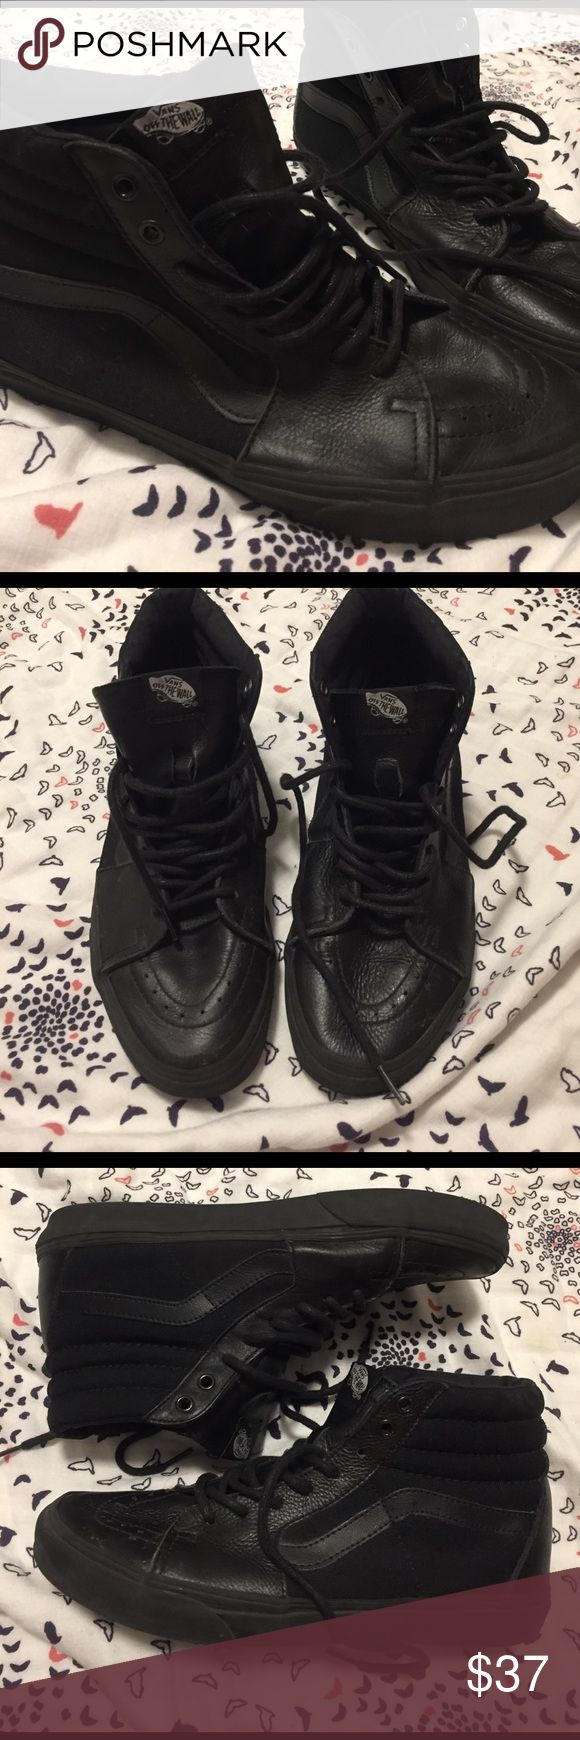 Men's Black On Black high top VANS These shoes are so badass! Seriously black on black on black ON BLACK high tops! Some signs of wear but very well taken care of. Soles are in great condition. Laces are not frayed. Right shoe has small scuff on toe (see photo) don't miss out on these 🕴🏽 Vans Shoes Sneakers